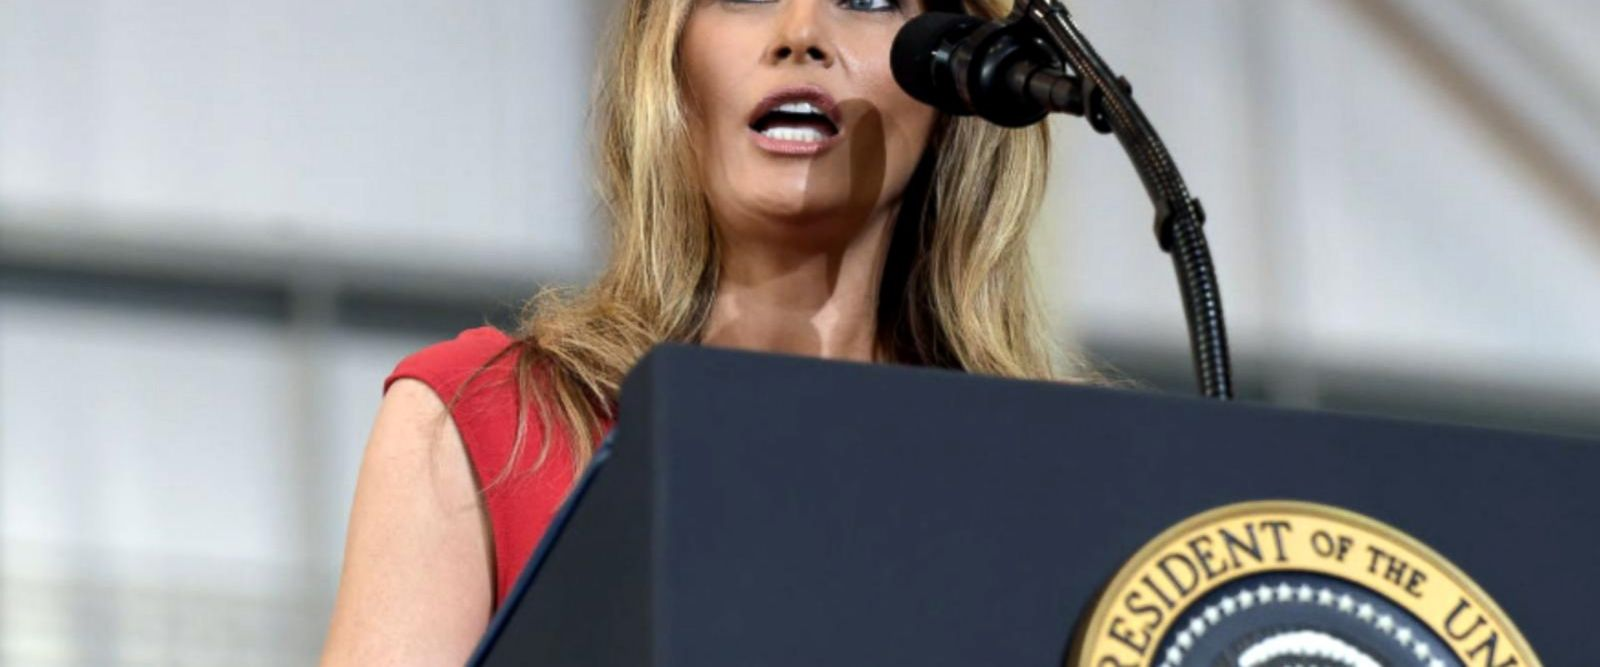 VIDEO: Melania Trump steps into spotlight with first public speech as first lady